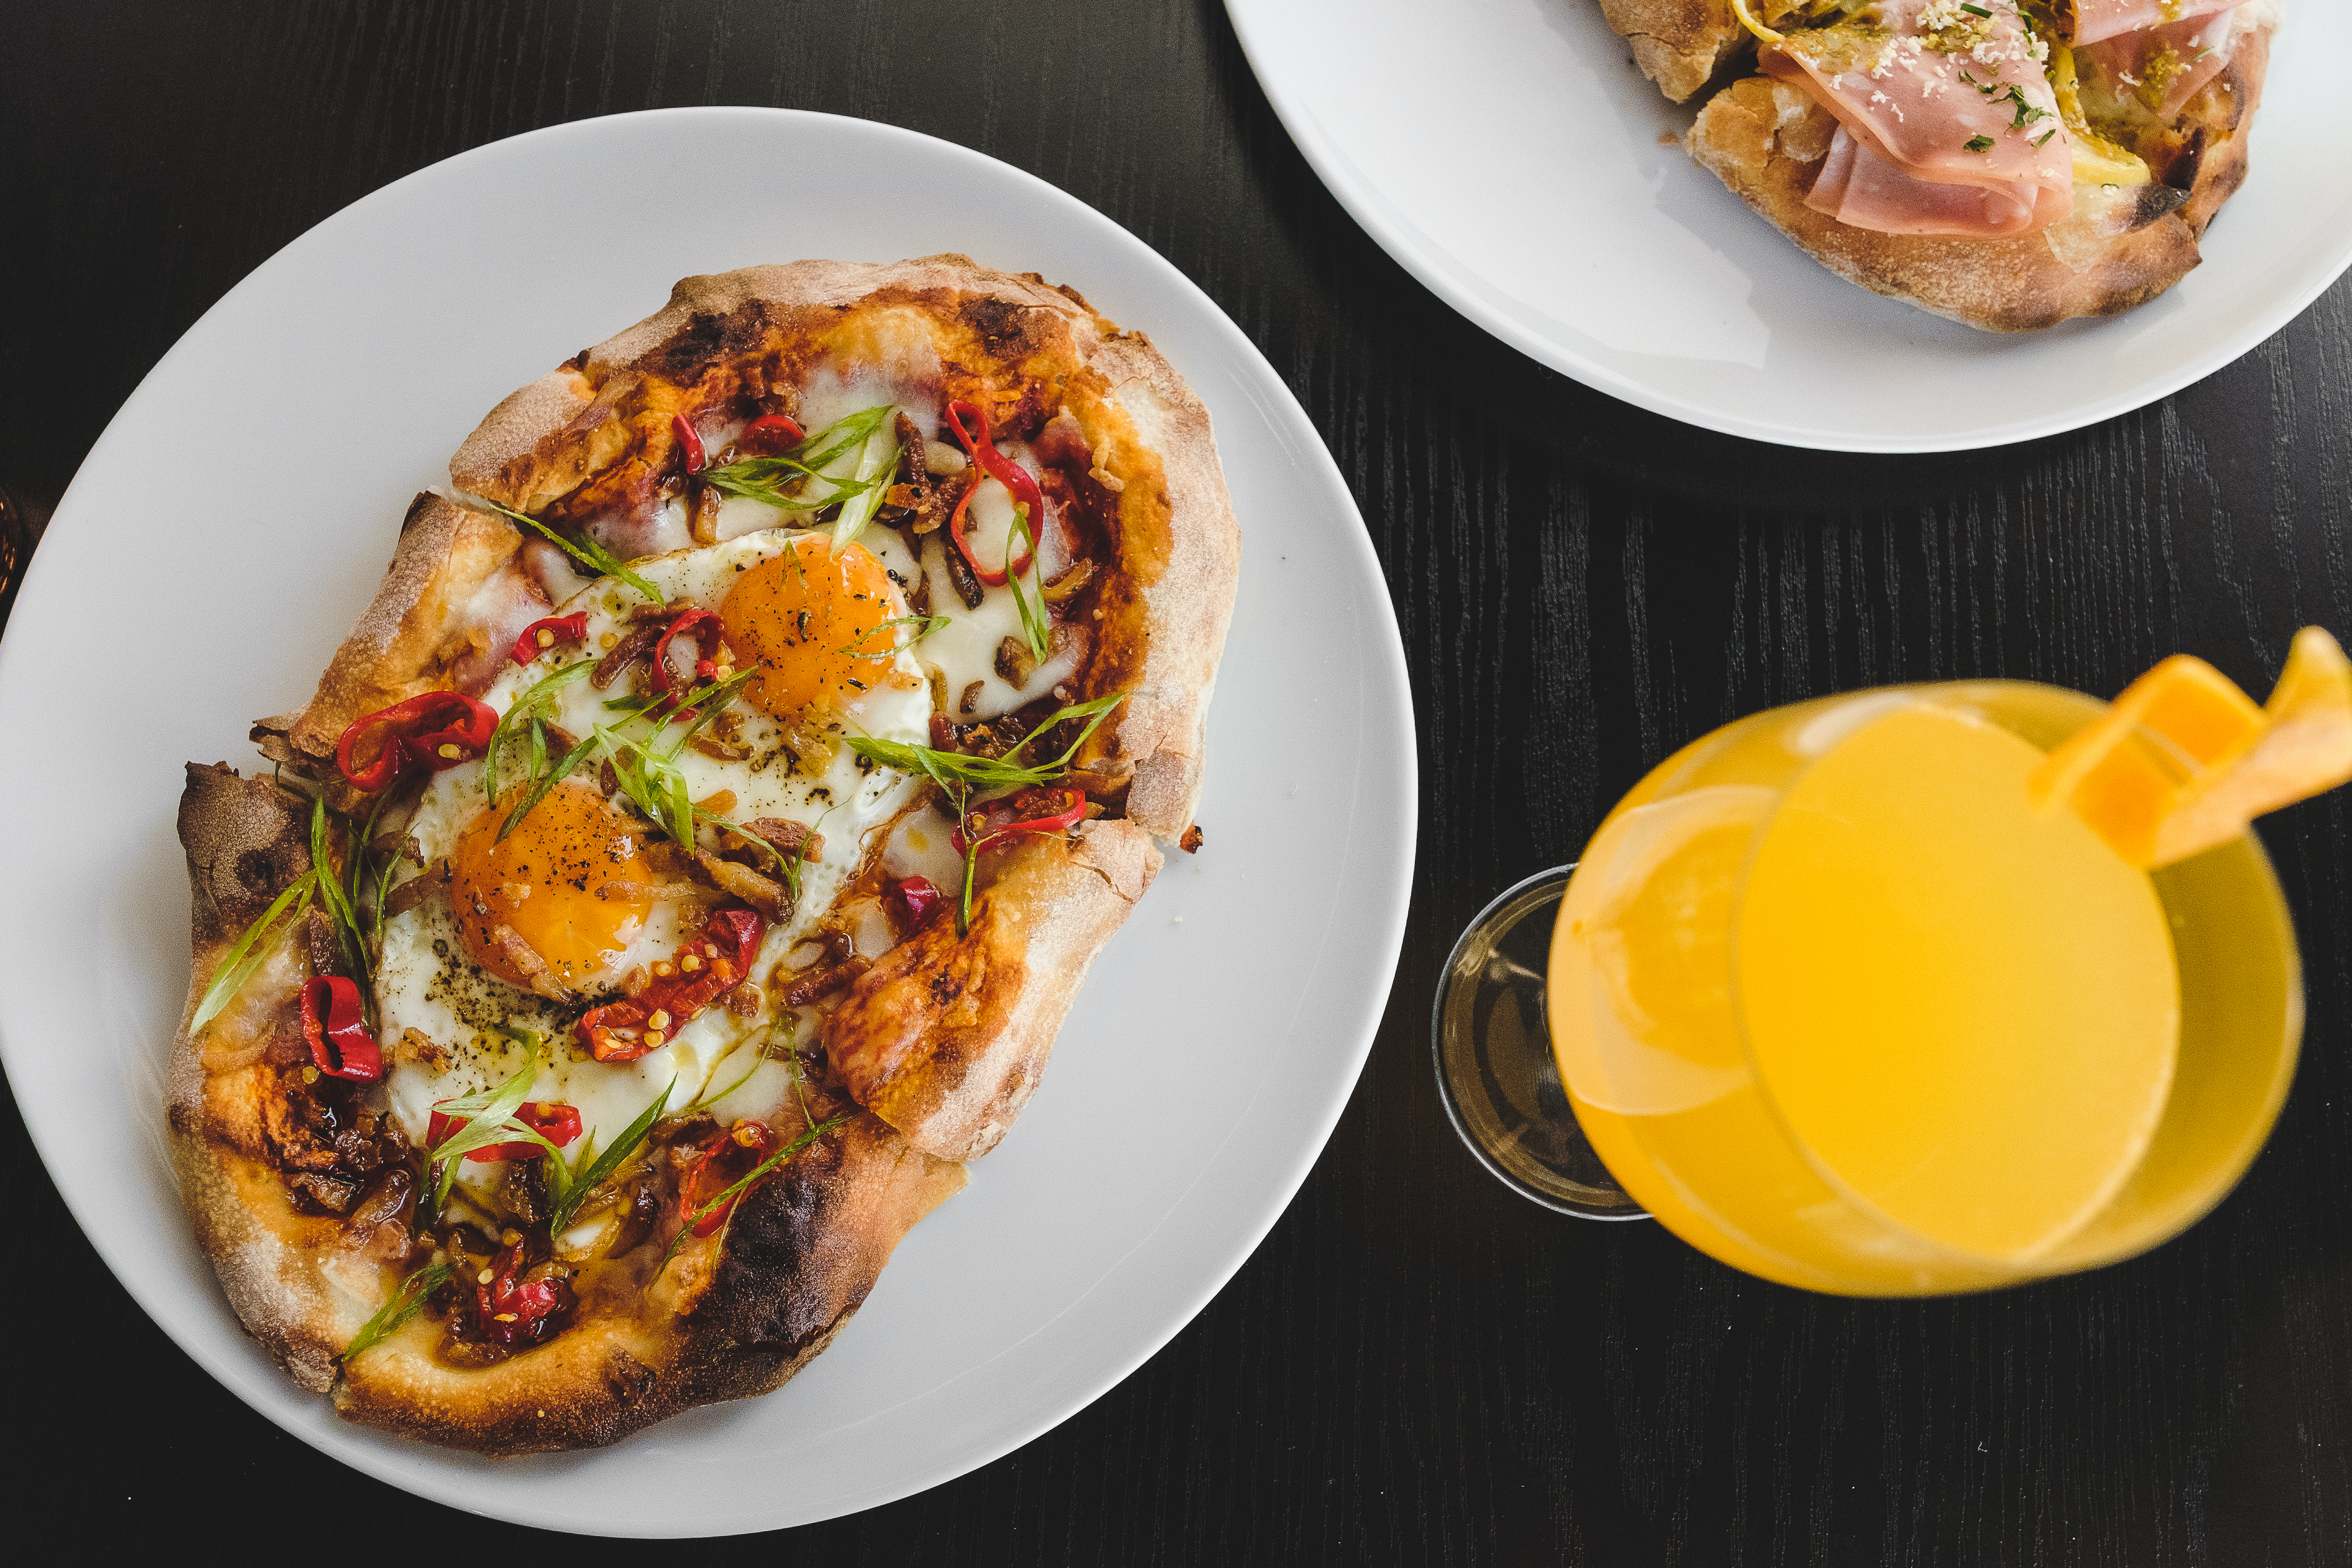 Pane frattau pizza with sunny-side-up eggs, guanciale, and chili